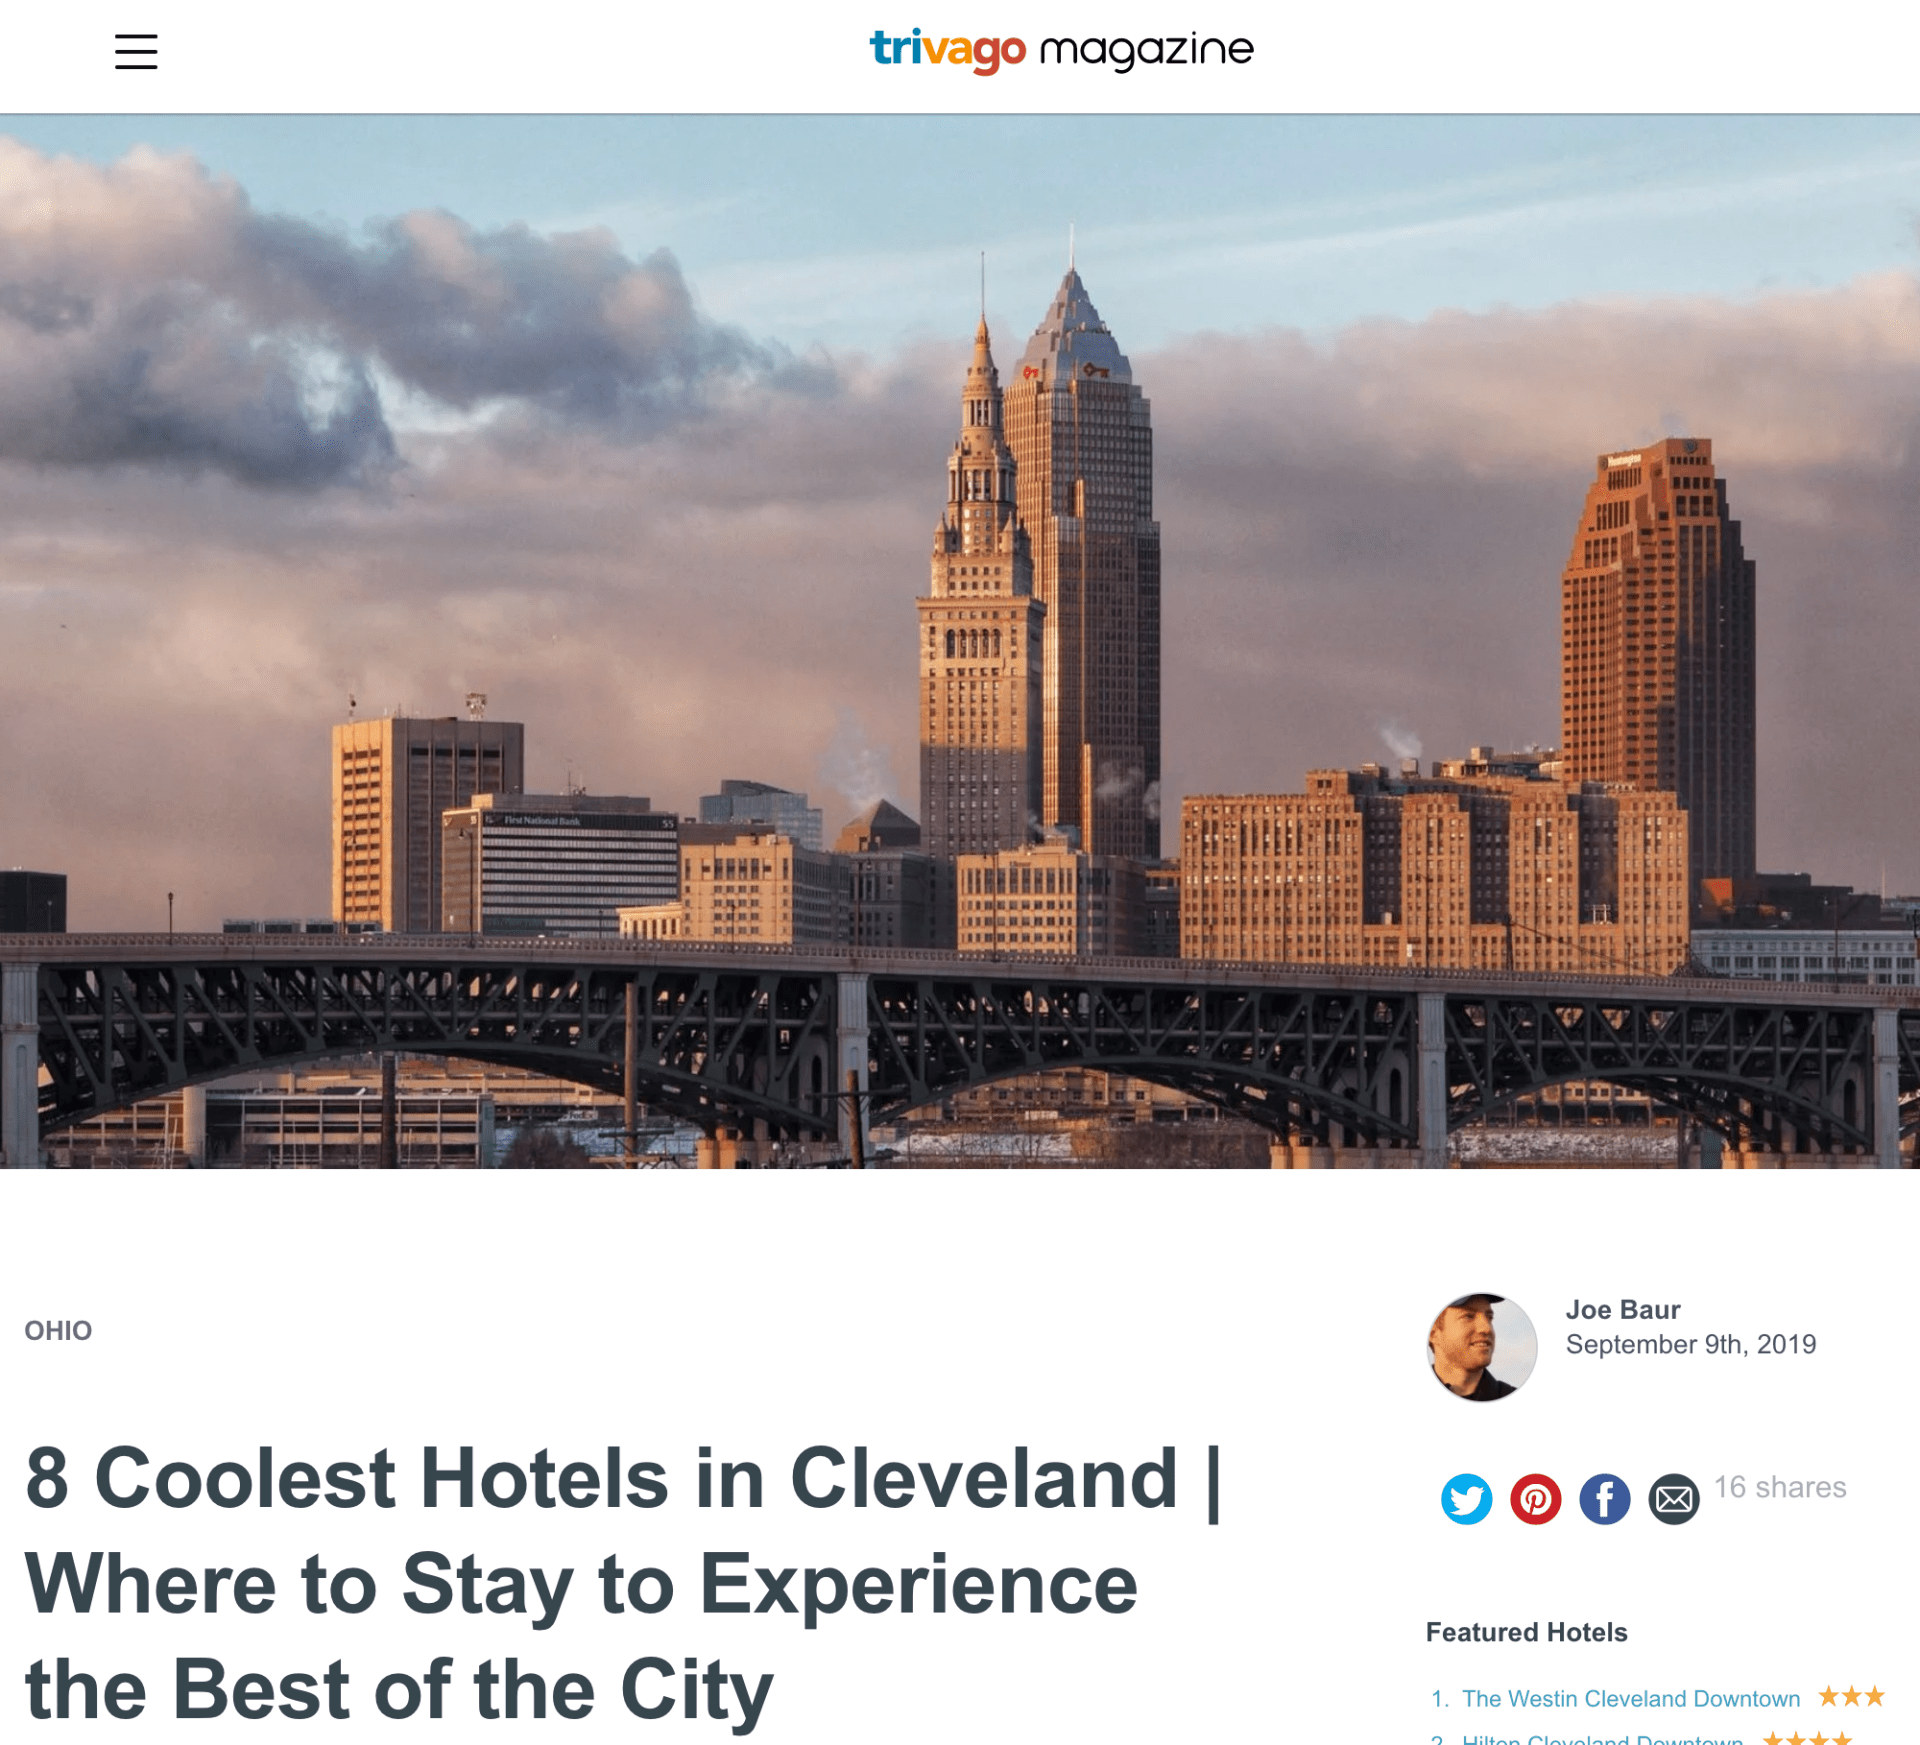 8 Coolest Hotels in Cleveland | Where to Stay to Experience the Best of the City - trivago Magazine